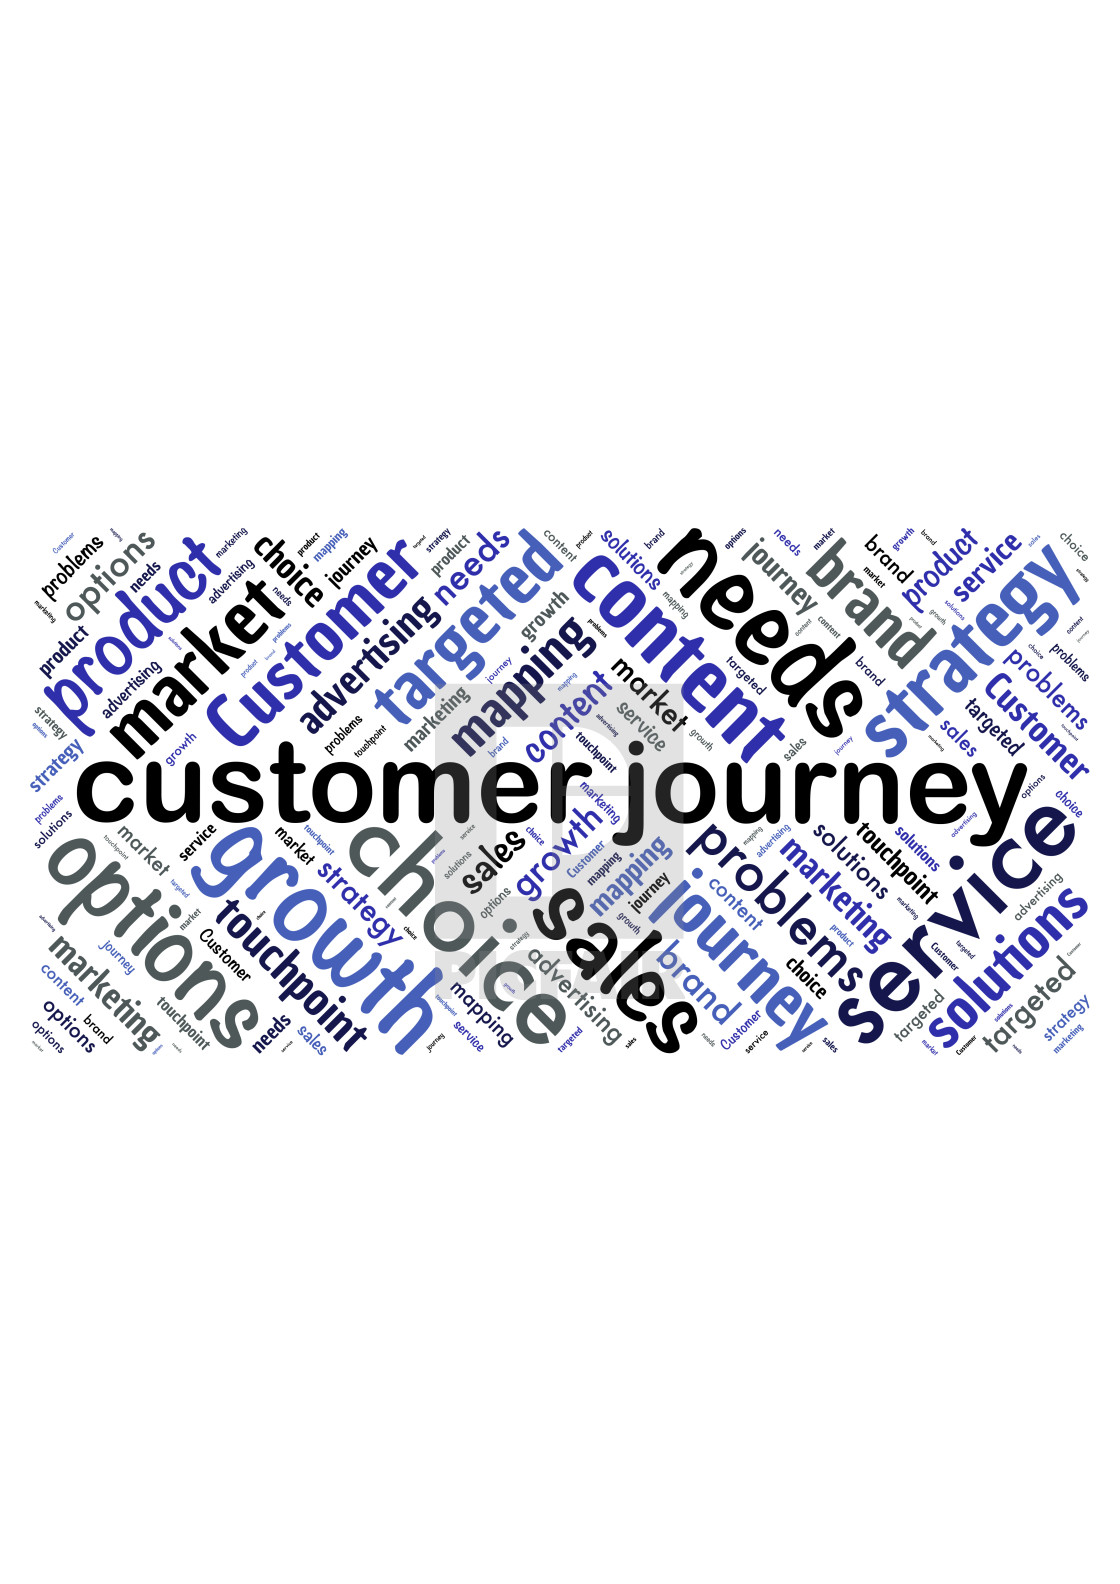 """Illustration of a word cloud with words representing customer jo"" stock image"